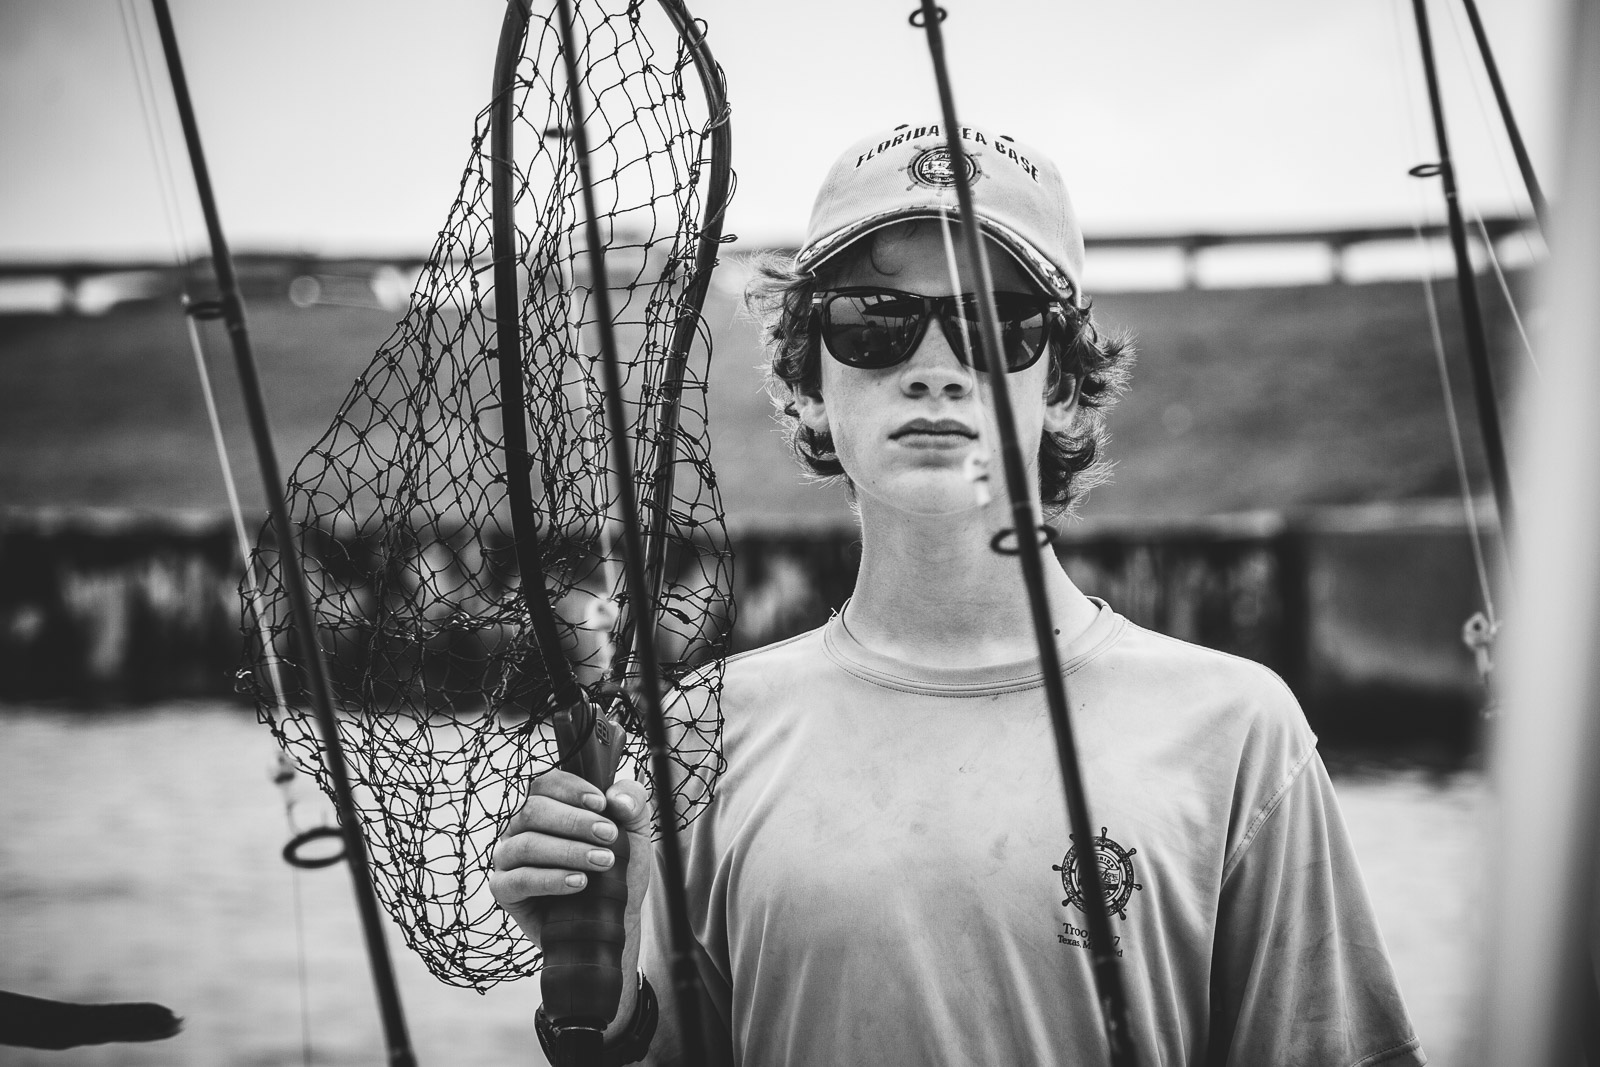 A boy holding a fishing pole in a still black and white photo during a video fusion photo session